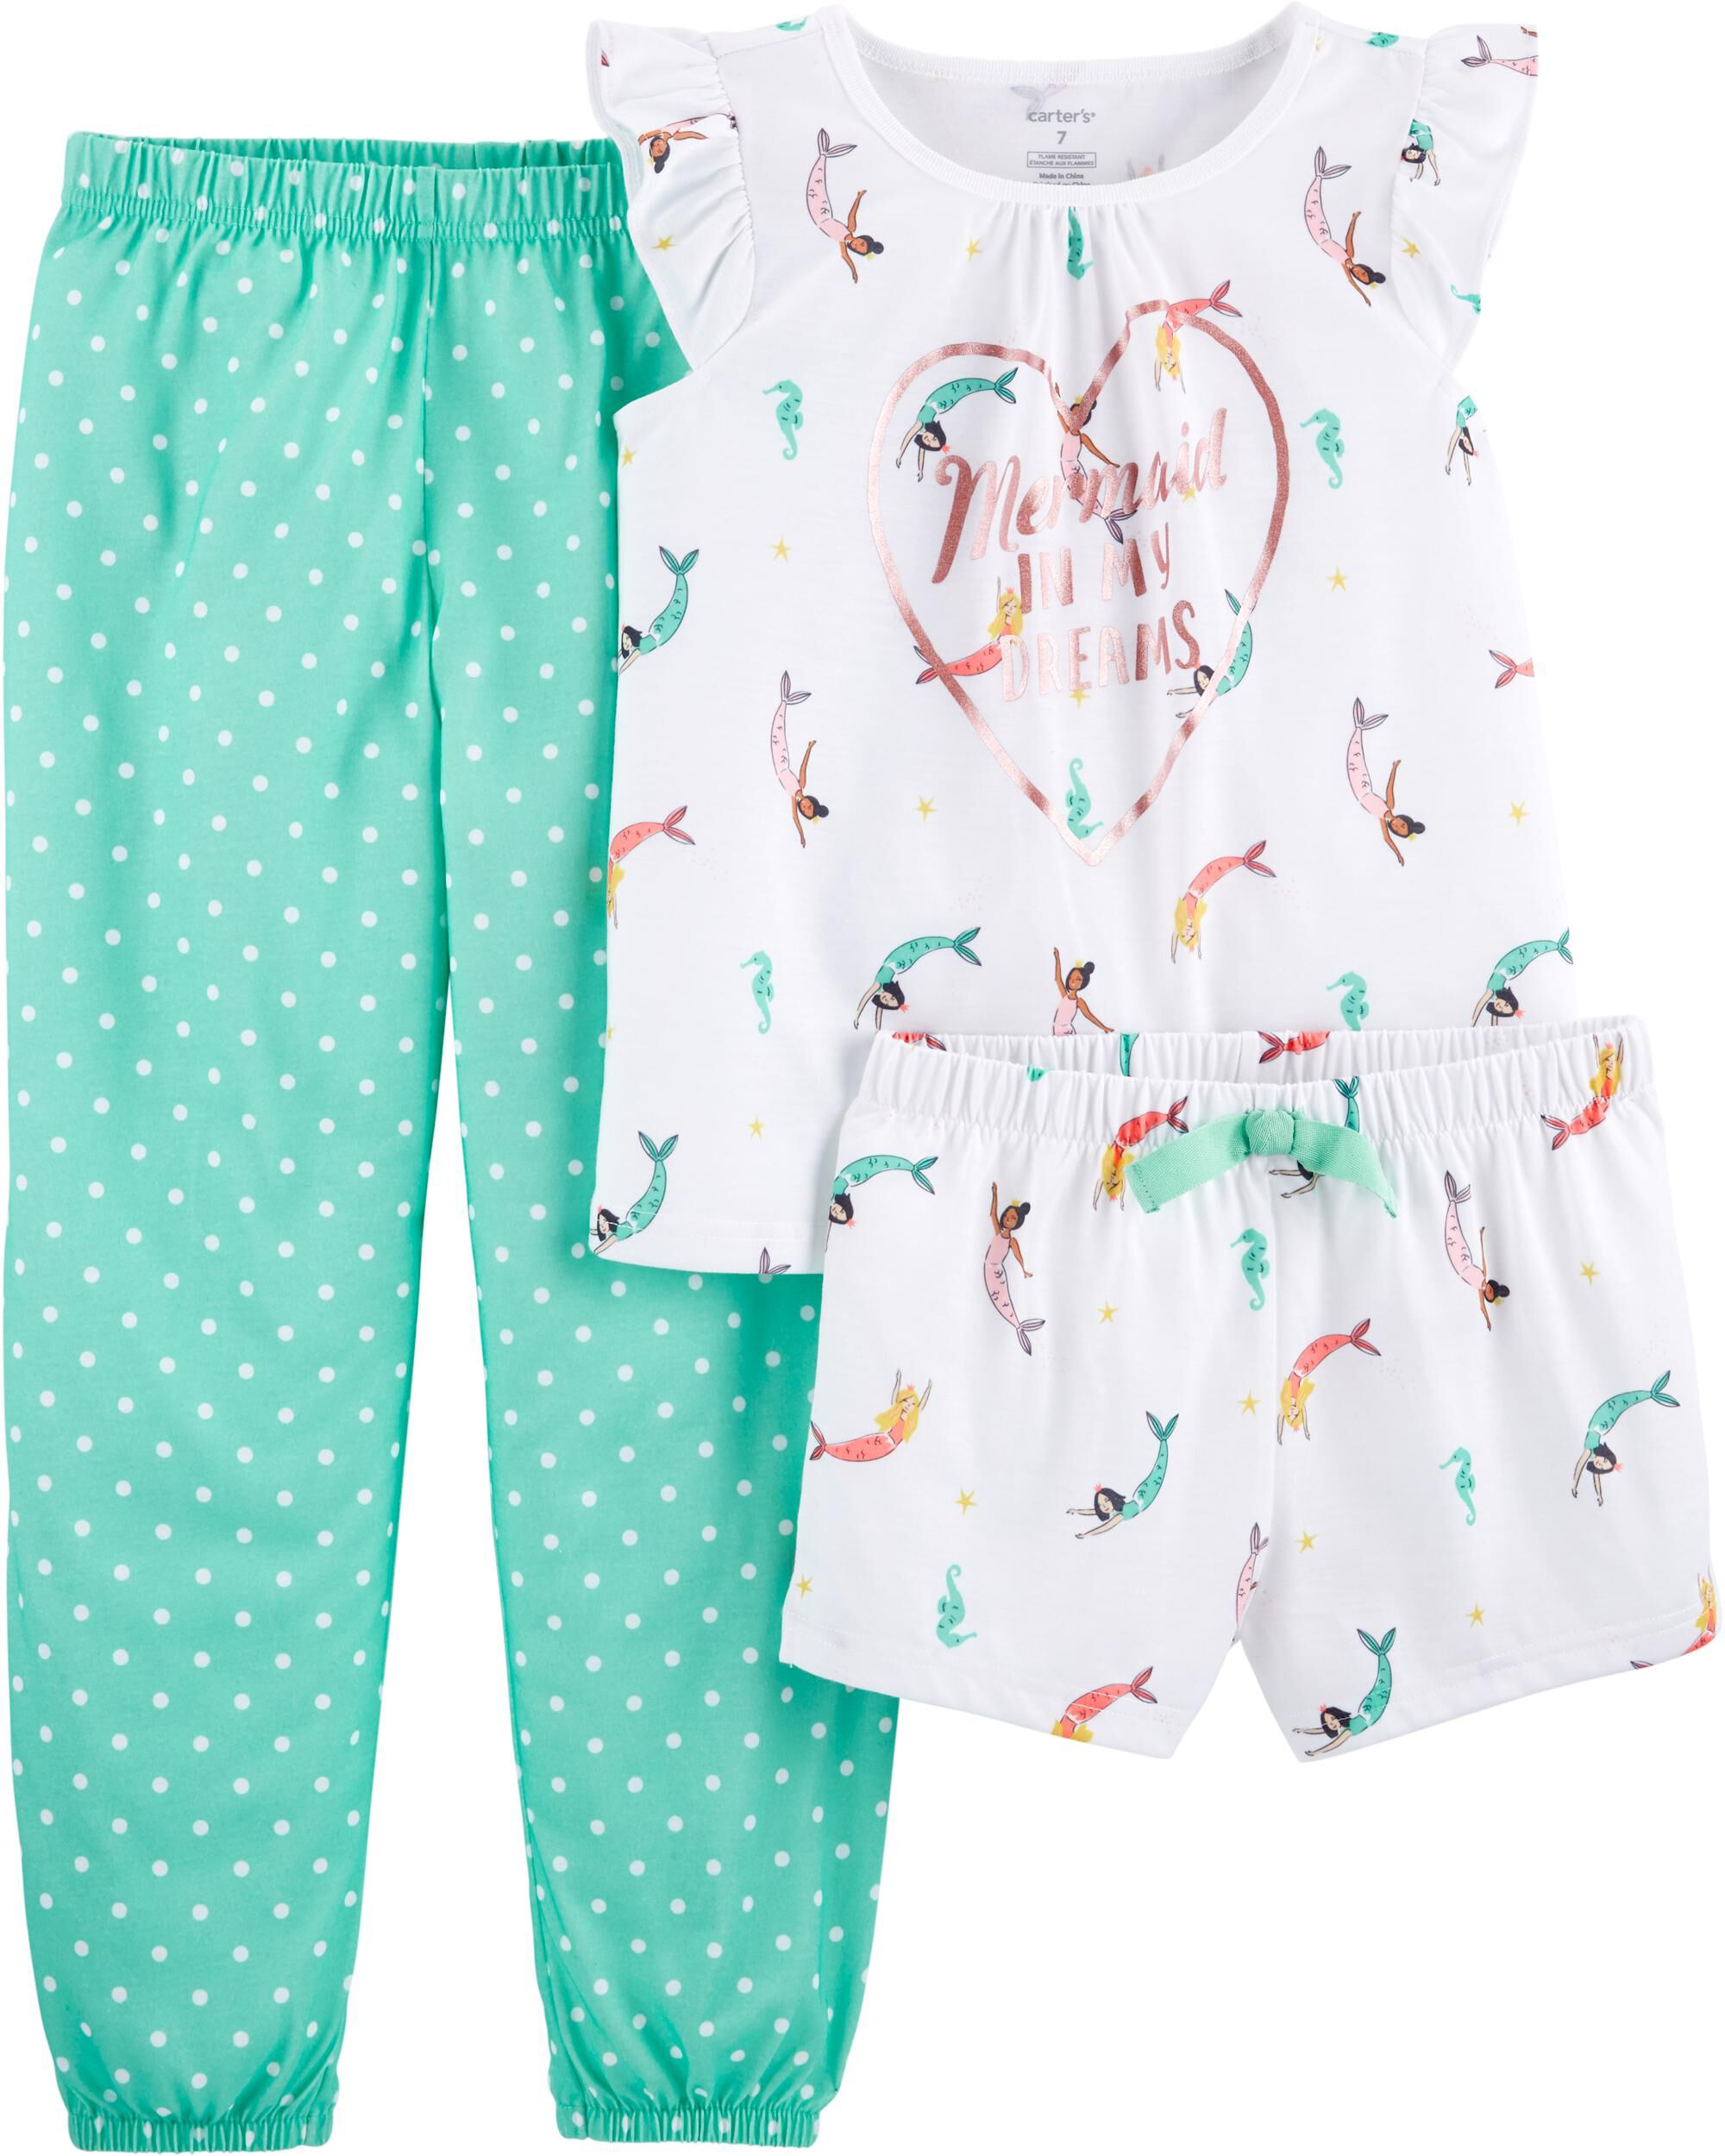 Just One You Girls Teal Gray White Kittens Fleece Pajama Pants 12 Months Sleepwear Girls' Clothing (newborn-5t)